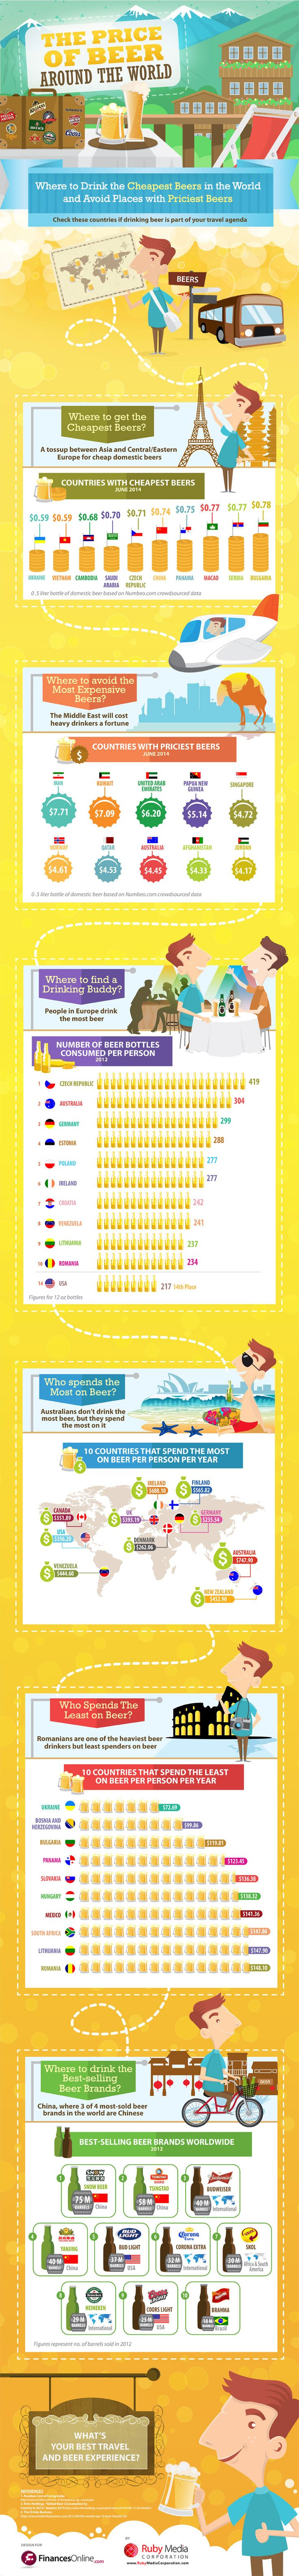 Which country spends the most and least on beer? This infographic is so fascinating!